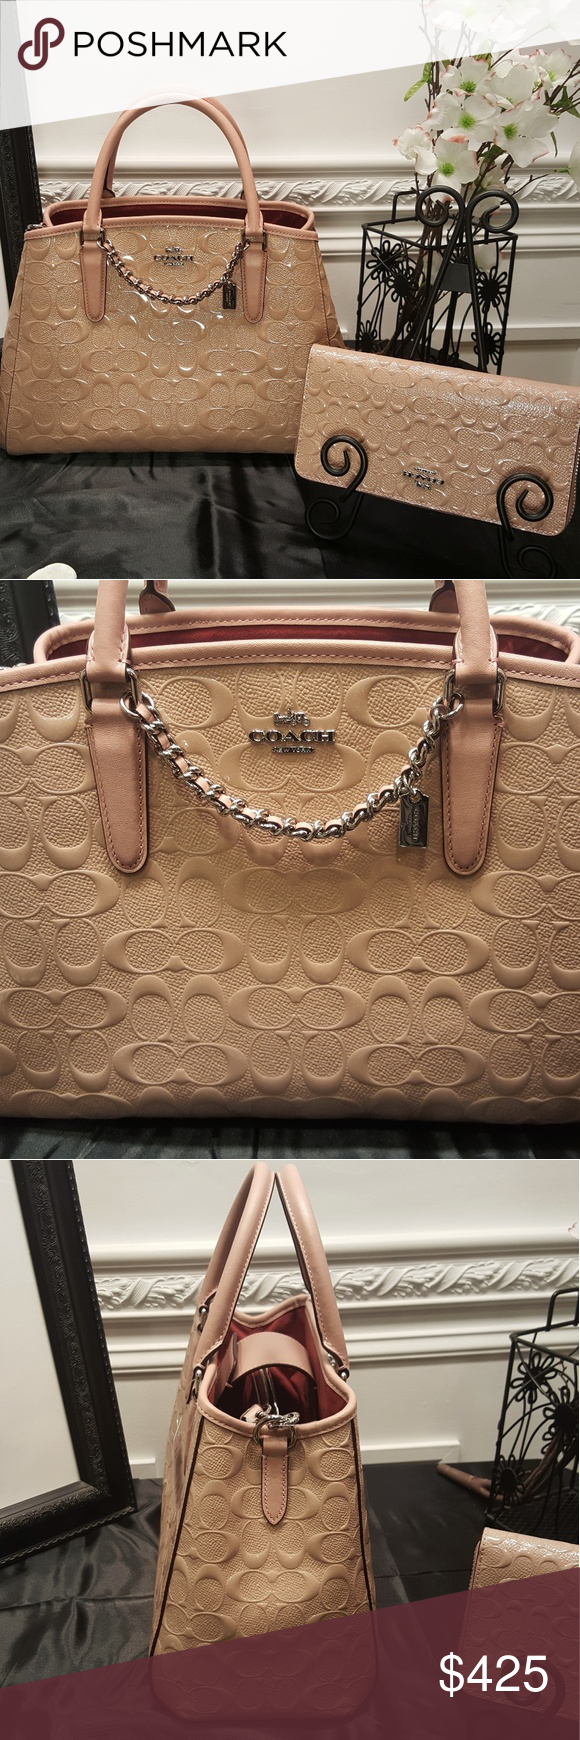 NWT Coach Small Margot carryall w wallet Signature Pink debossed patent  leather with signature C s 400c153ee3